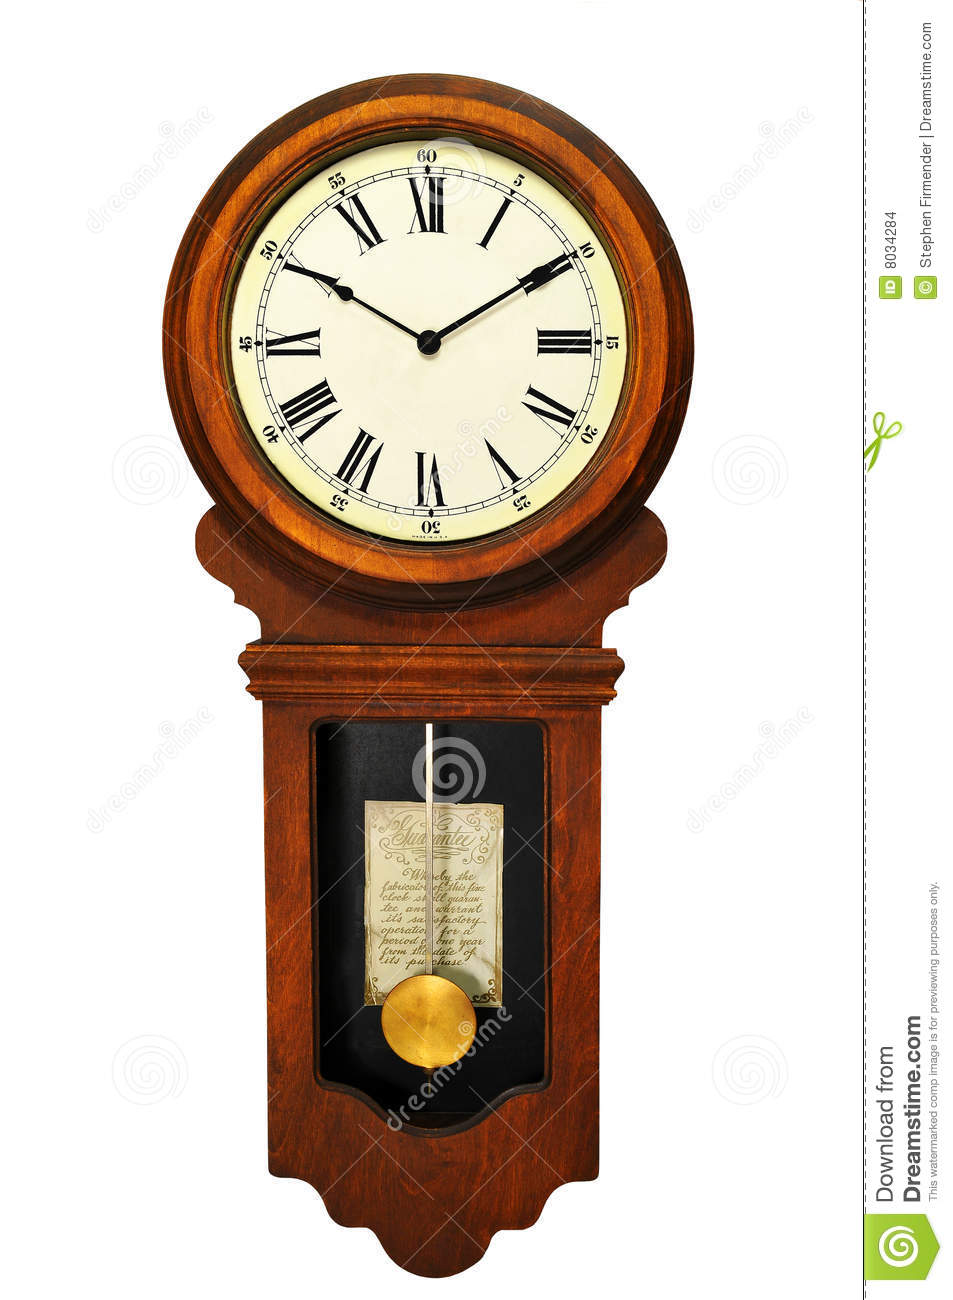 Antique wall clock stock photo image of vintage time - Reloj decorativo de pared ...